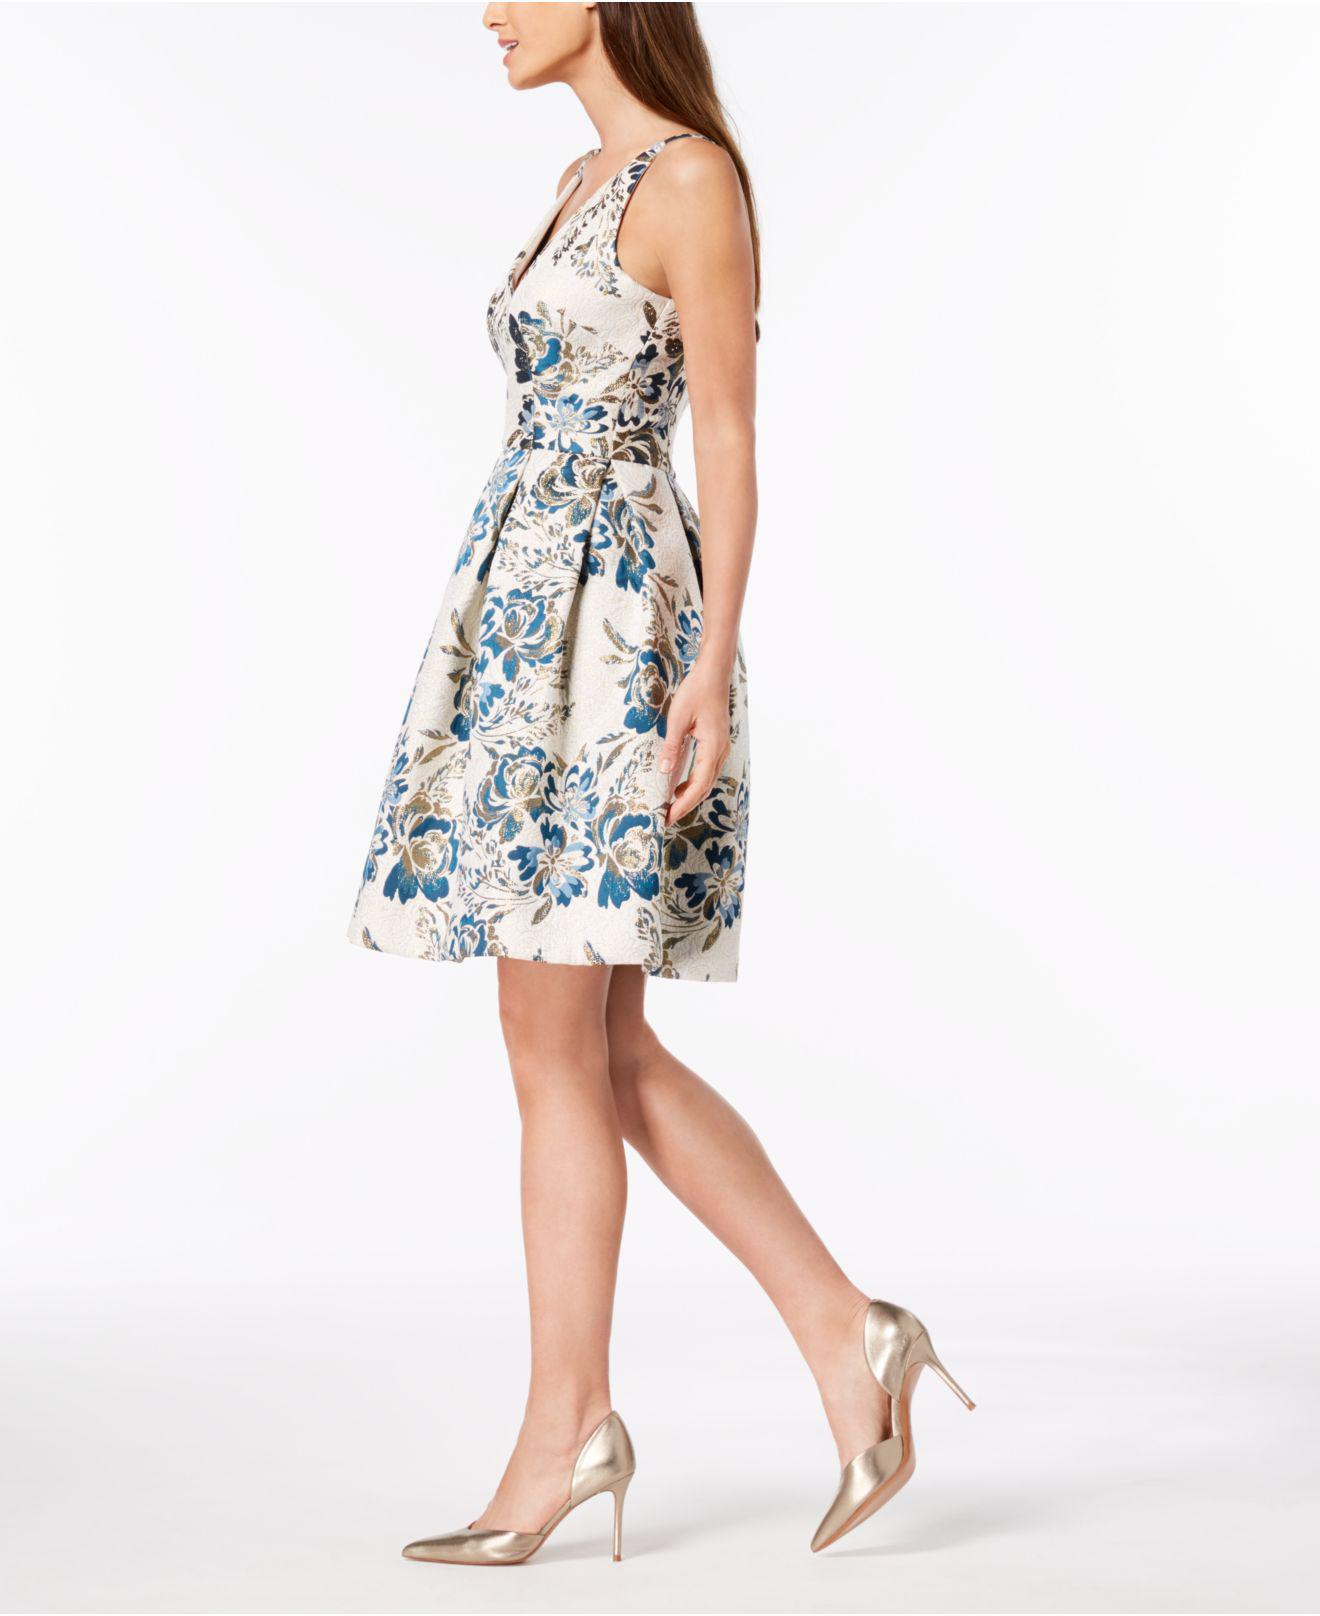 a396c2c4 Xscape Brocade Fit & Flare Dress in Blue - Lyst